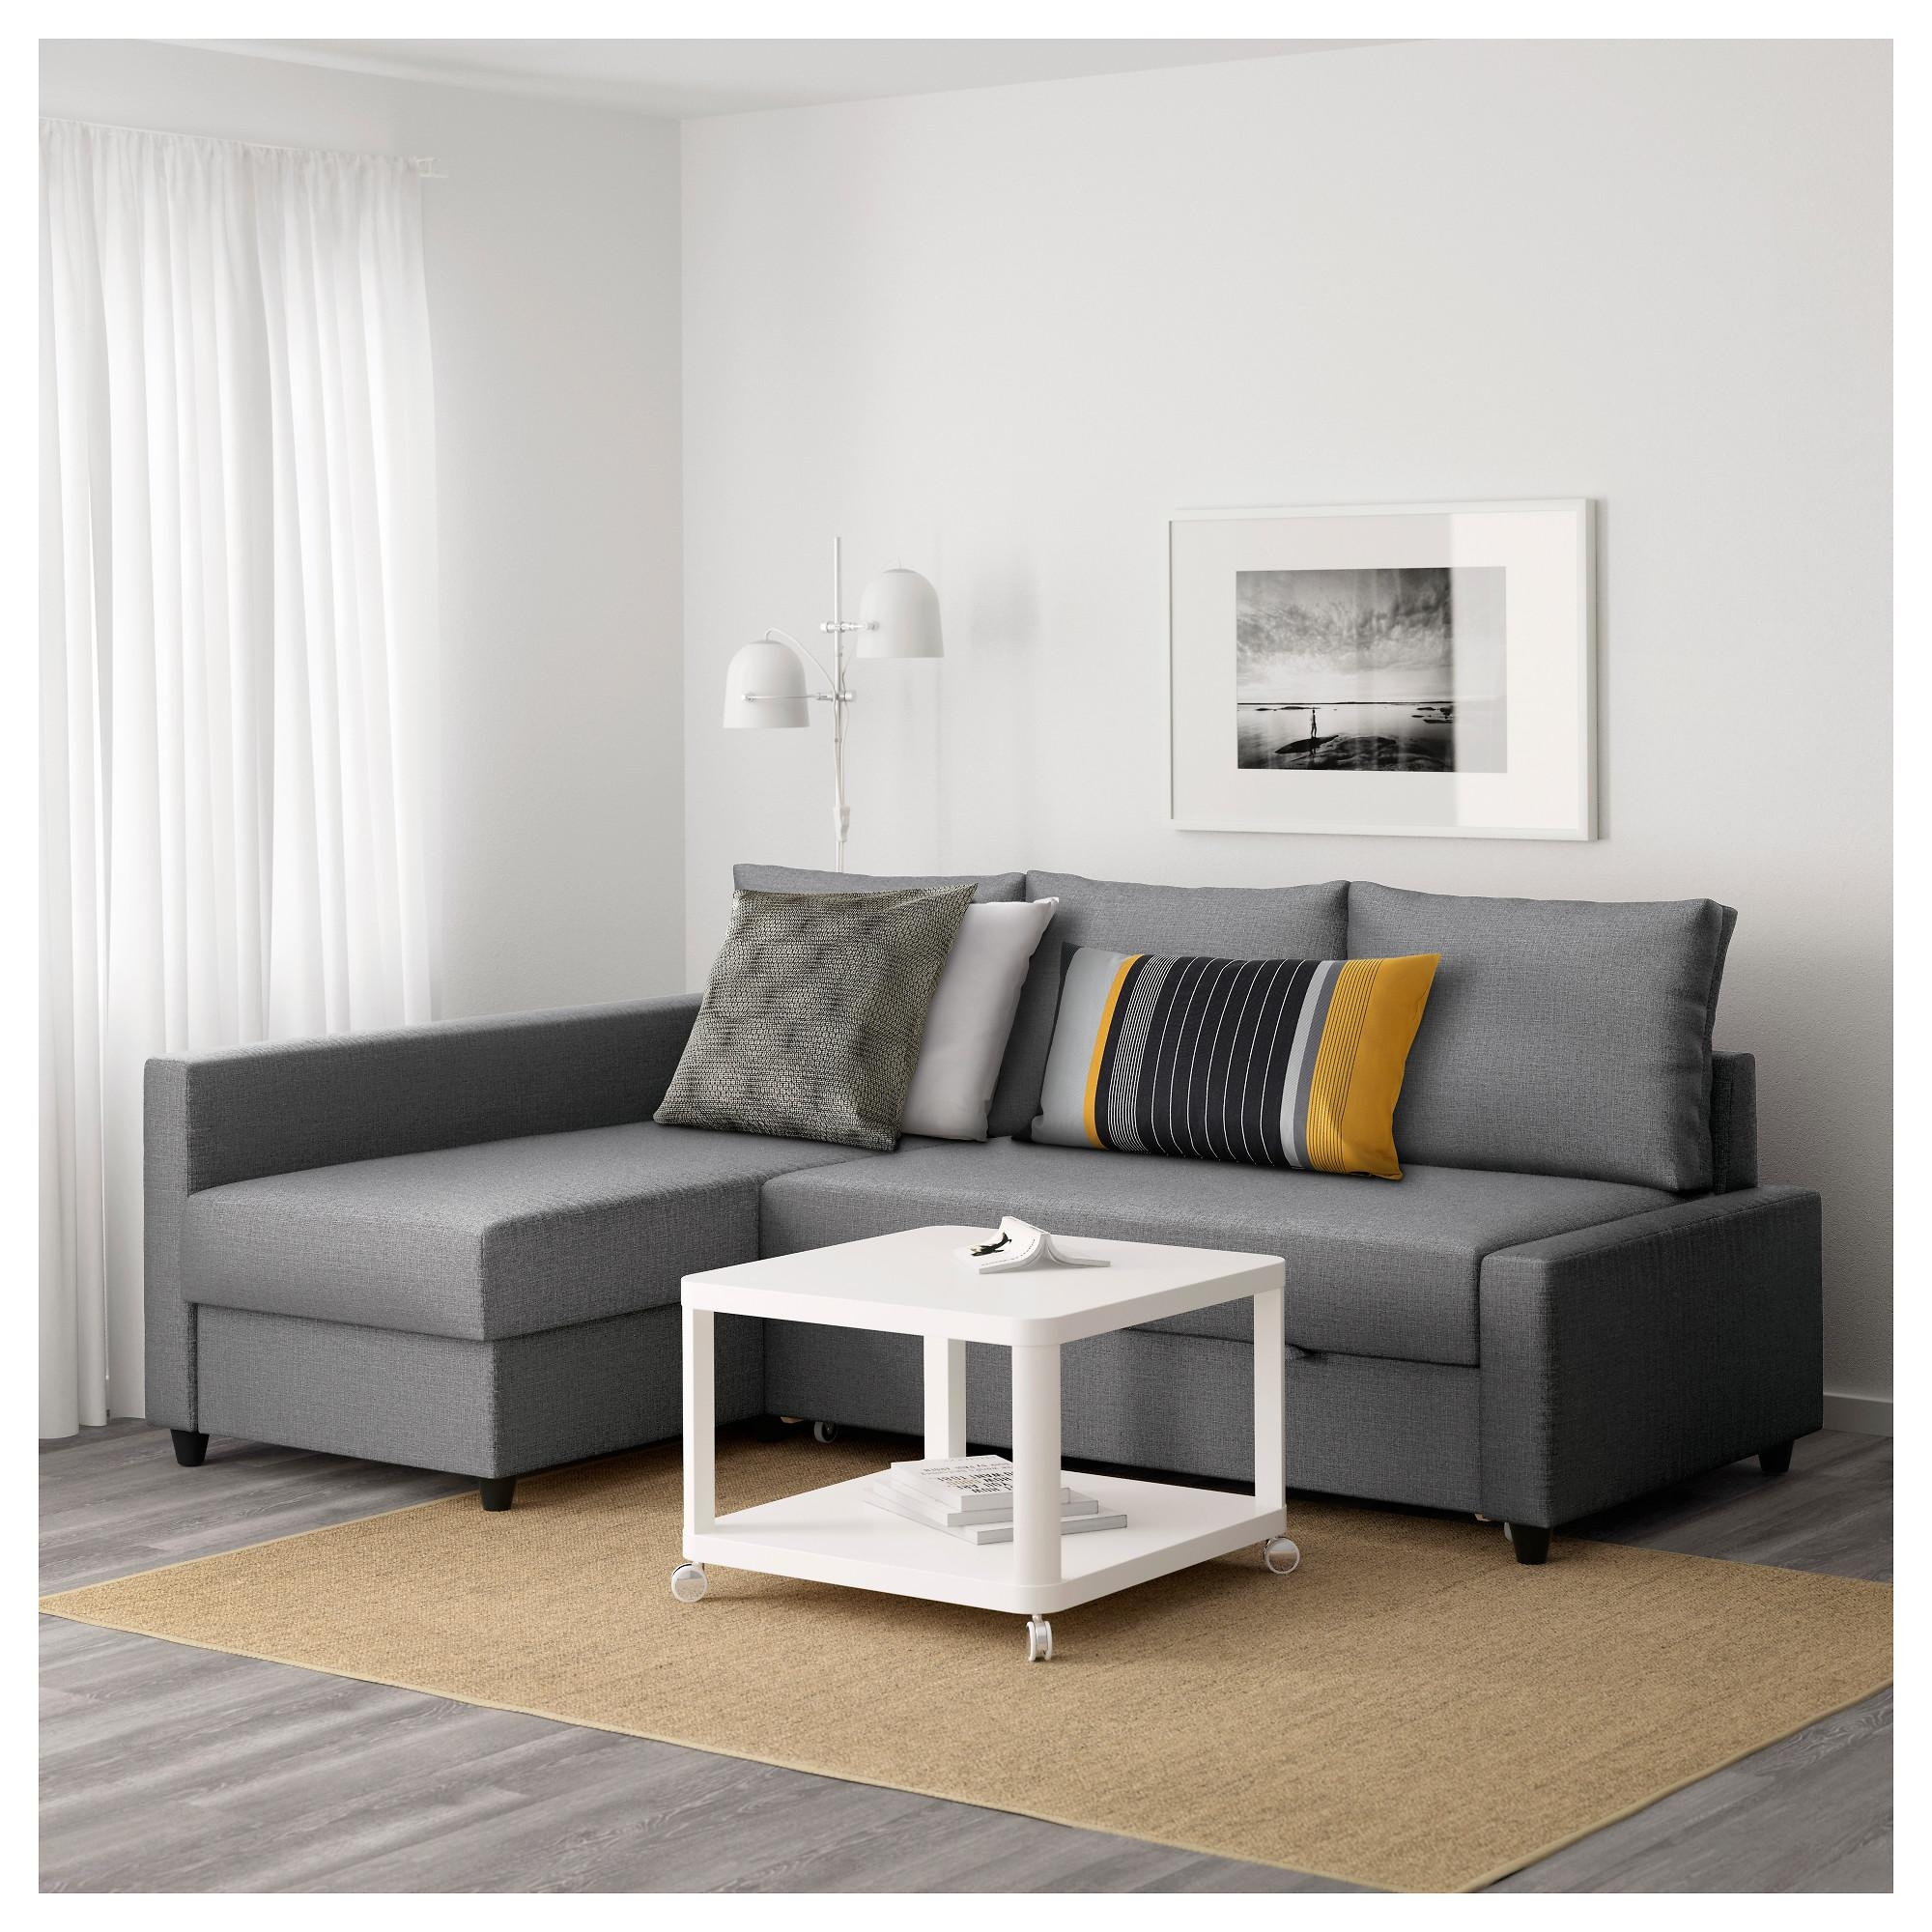 Friheten Corner Sofa Bed With Storage Skiftebo Dark Grey – Ikea In Ikea Sofa Storage (View 3 of 20)